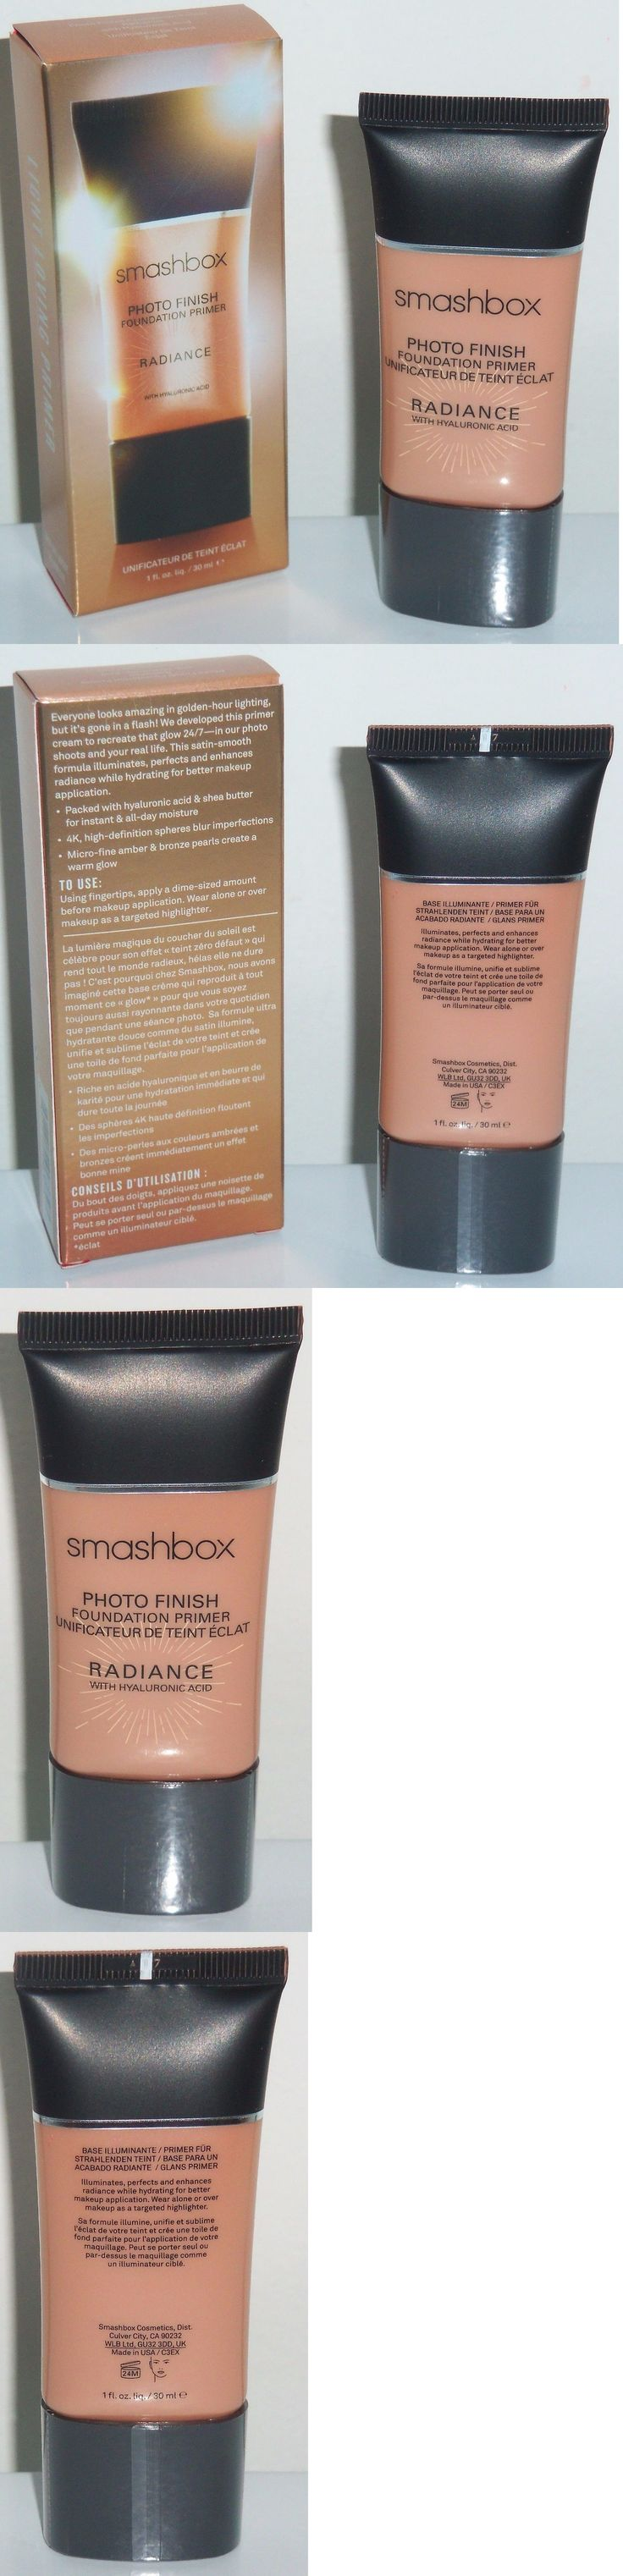 Foundation Primer: *Brand New In Box* Smashbox Photo Finish Foundation Primer Radiance 1Floz(30Ml) -> BUY IT NOW ONLY: $38.99 on eBay!